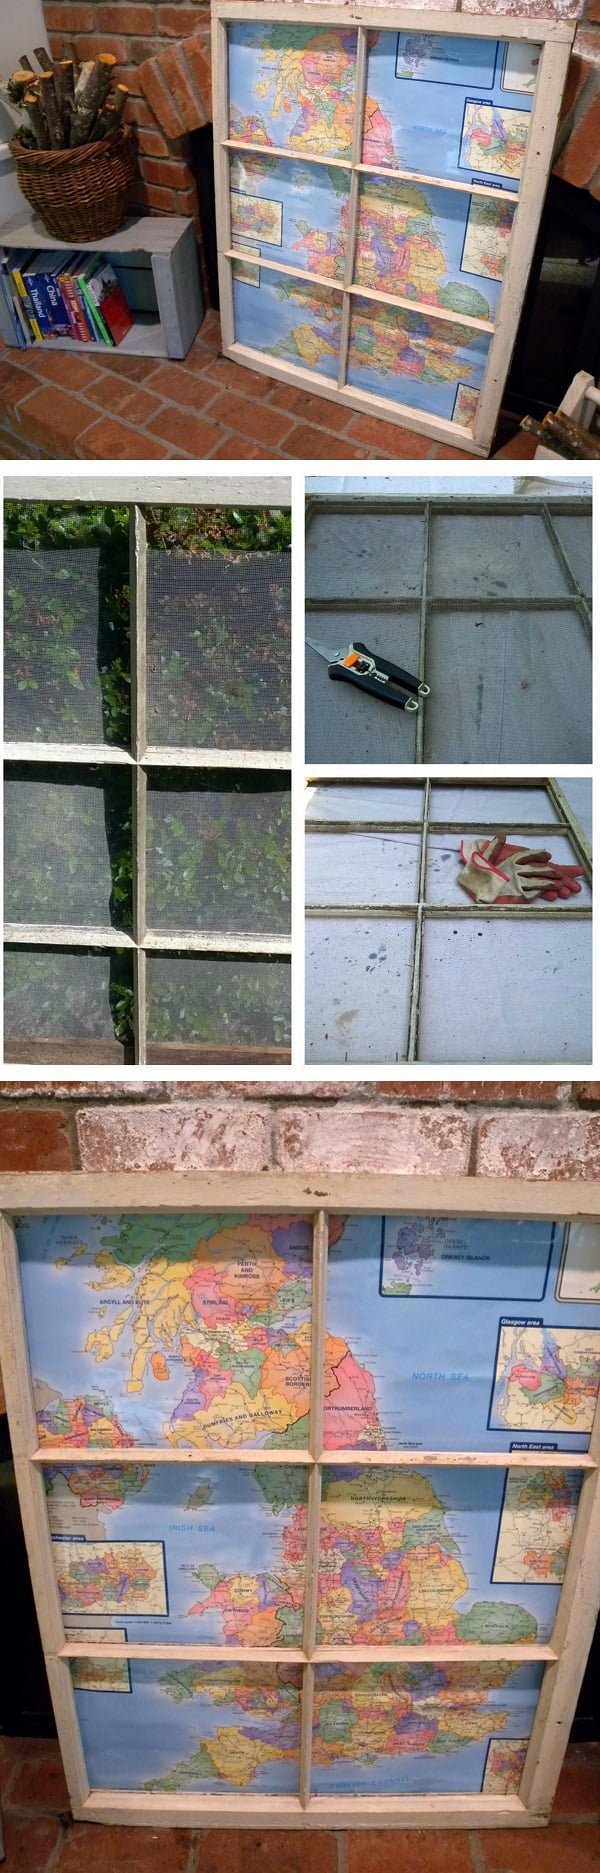 Check out the tutorial how to make a DIY decorative map from an old window